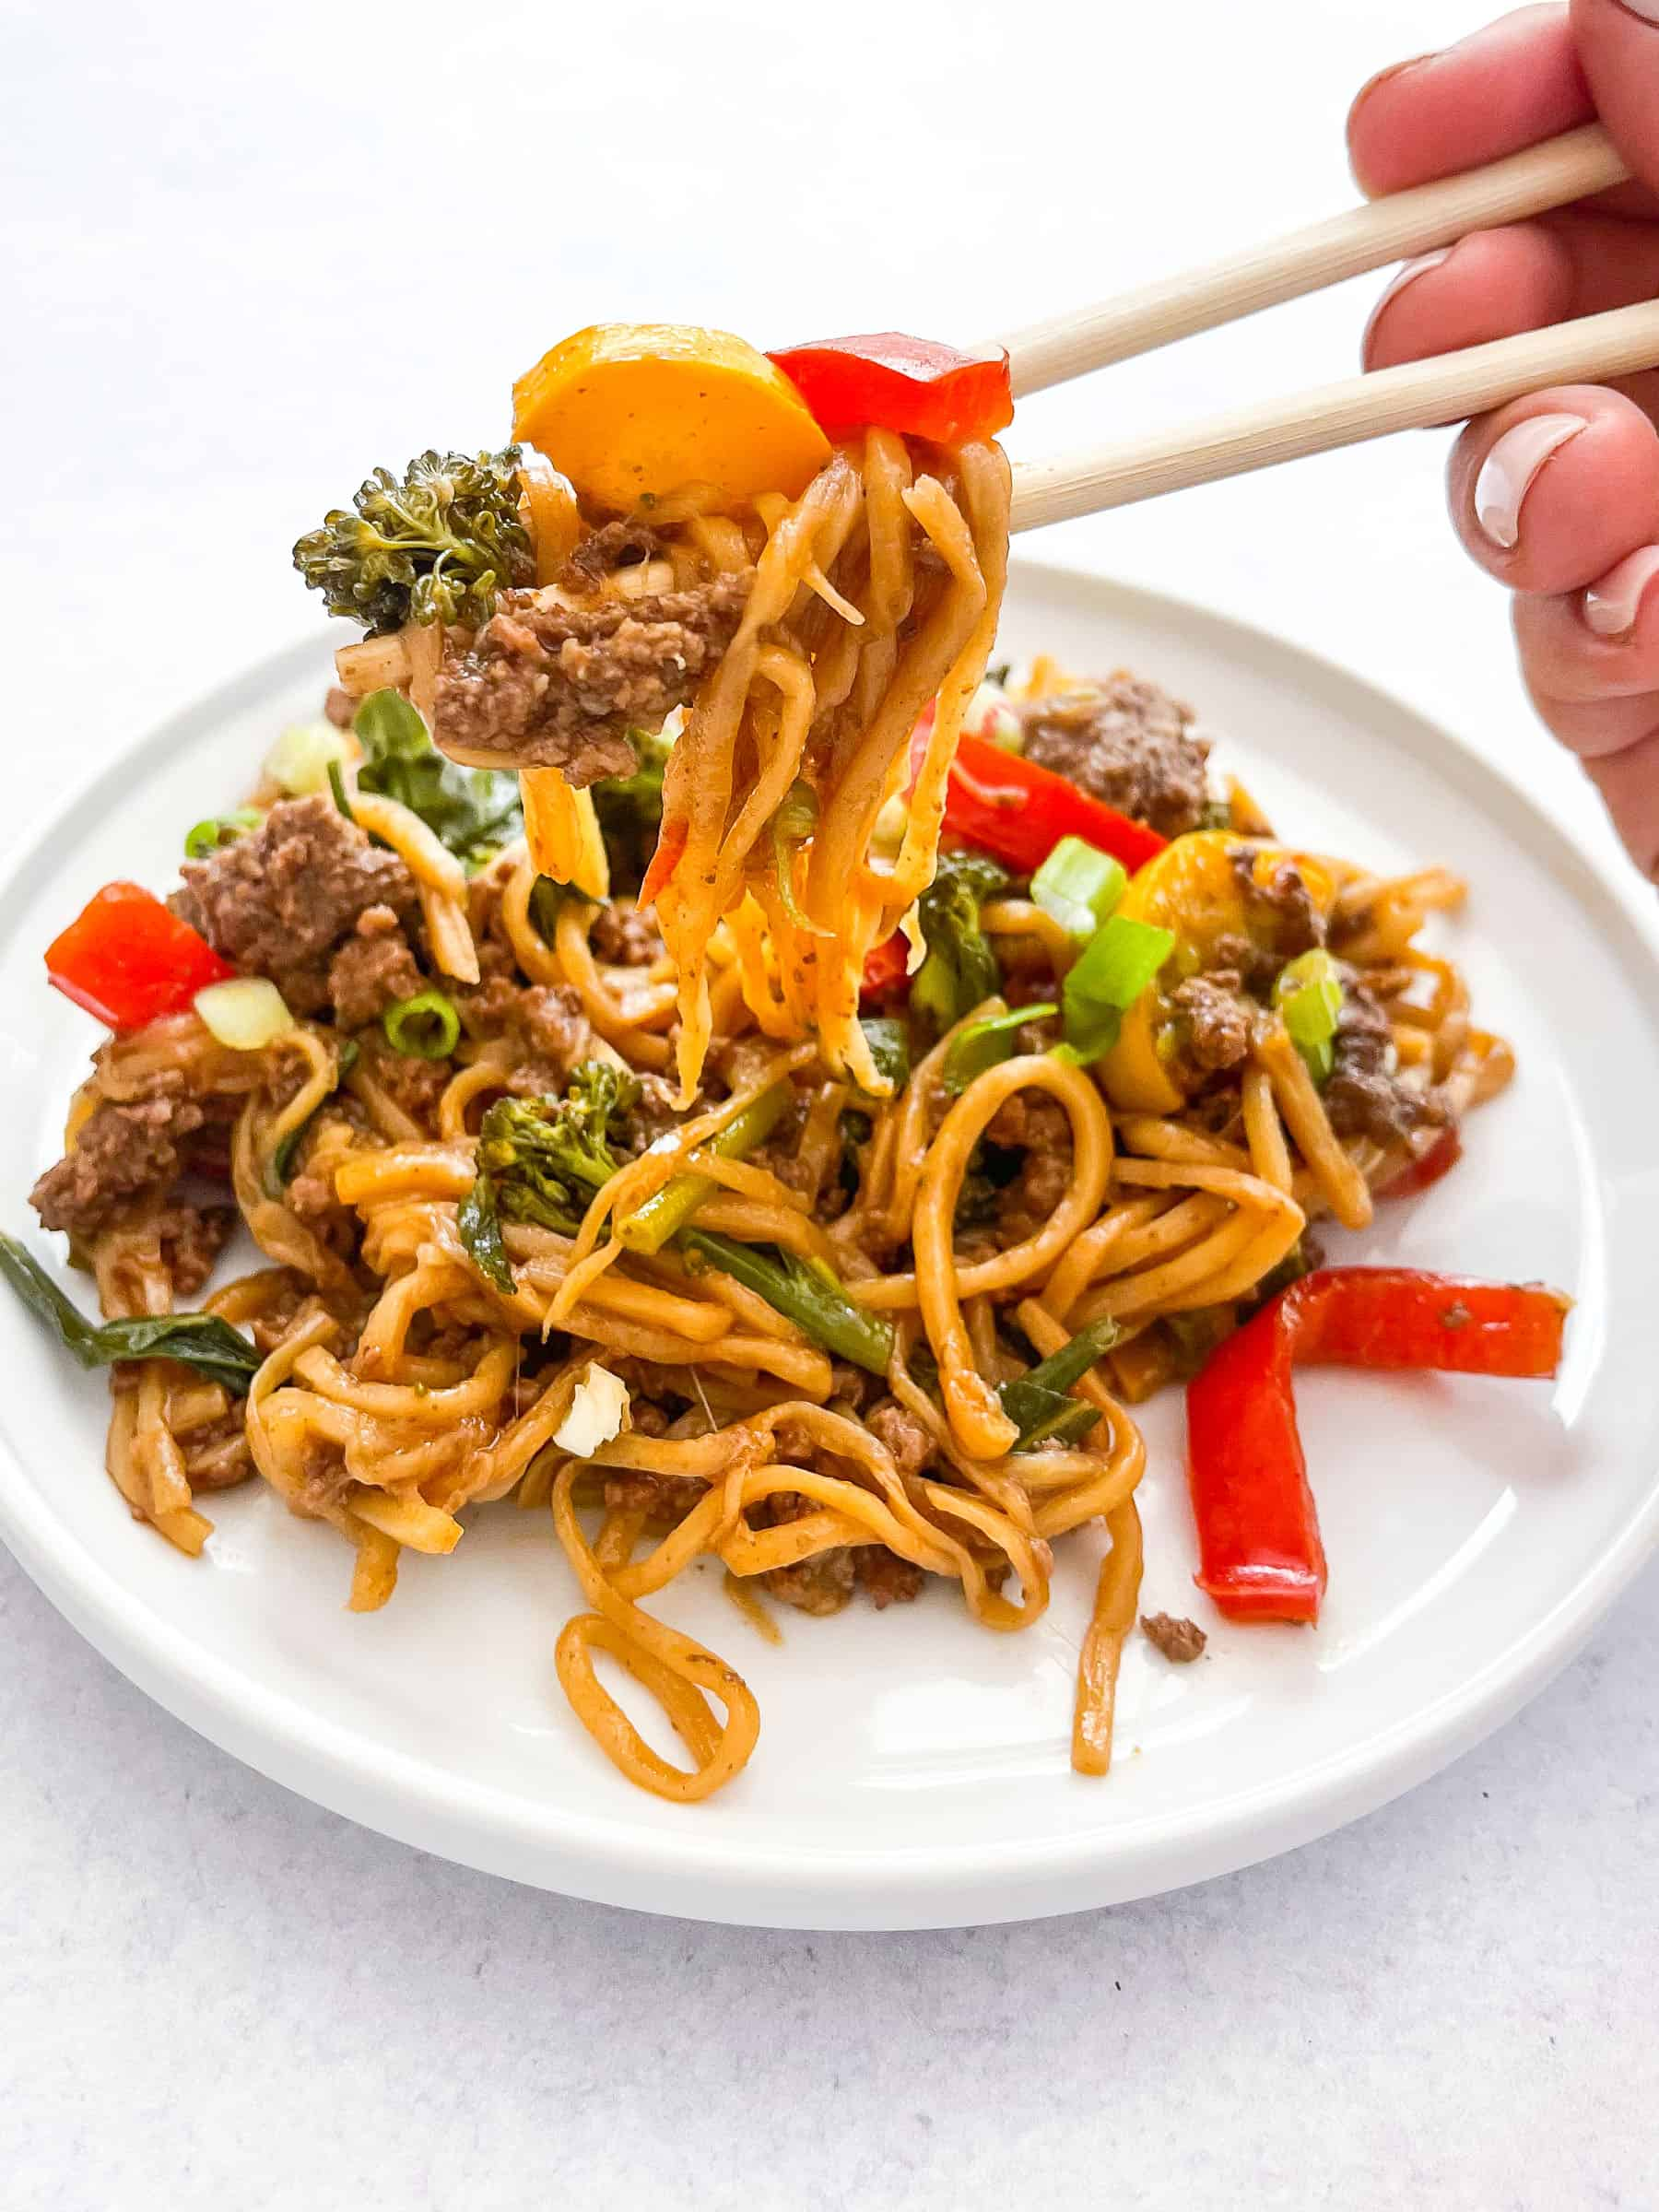 keto beef and vegetable noodle stir fry on a white plate with two chopsticks holding the stir fry with a white background